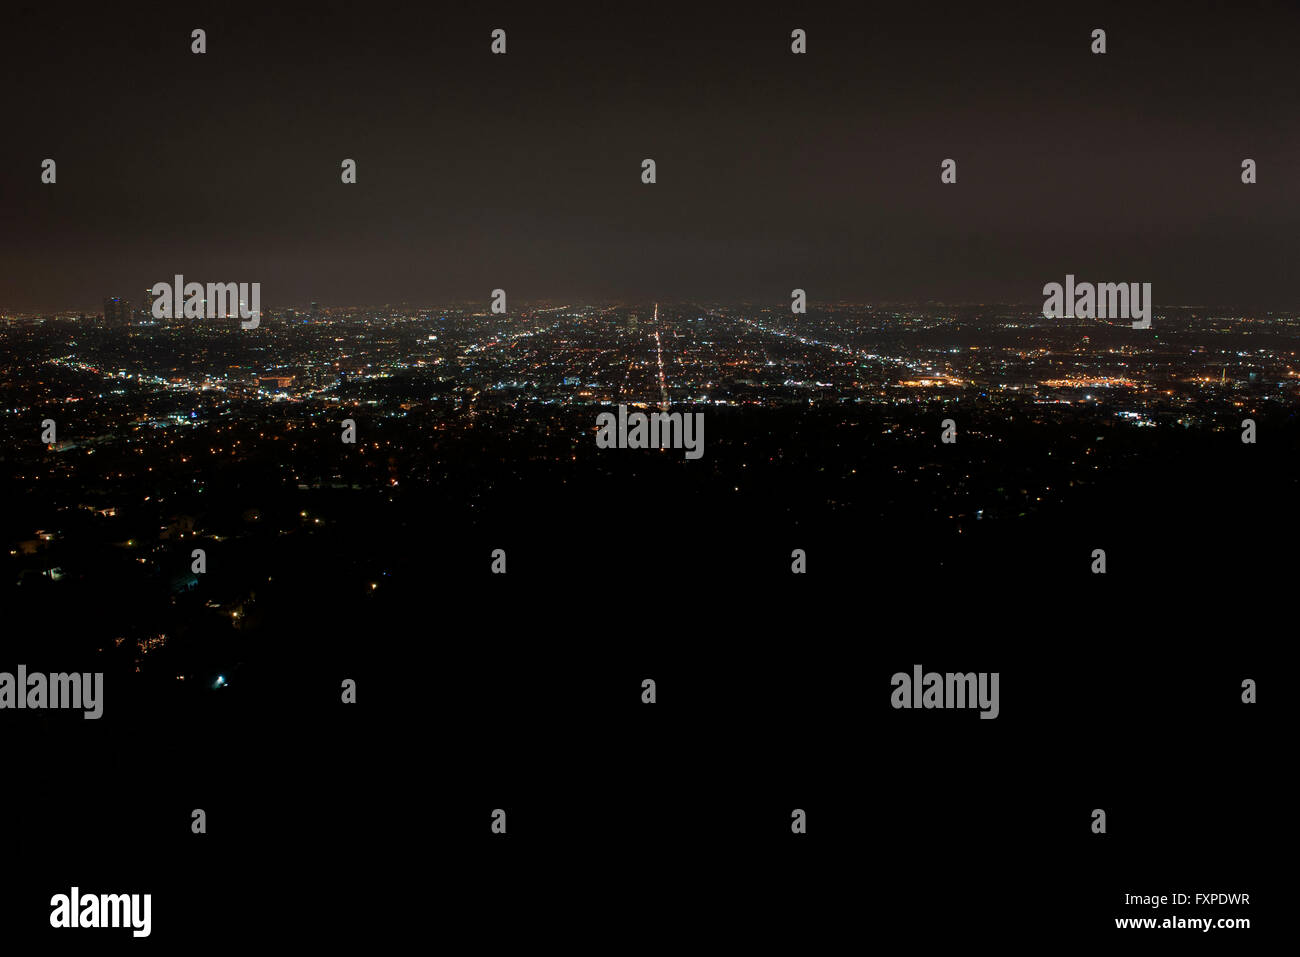 View of city lights at night, Los Angeles, California, USA - Stock Image